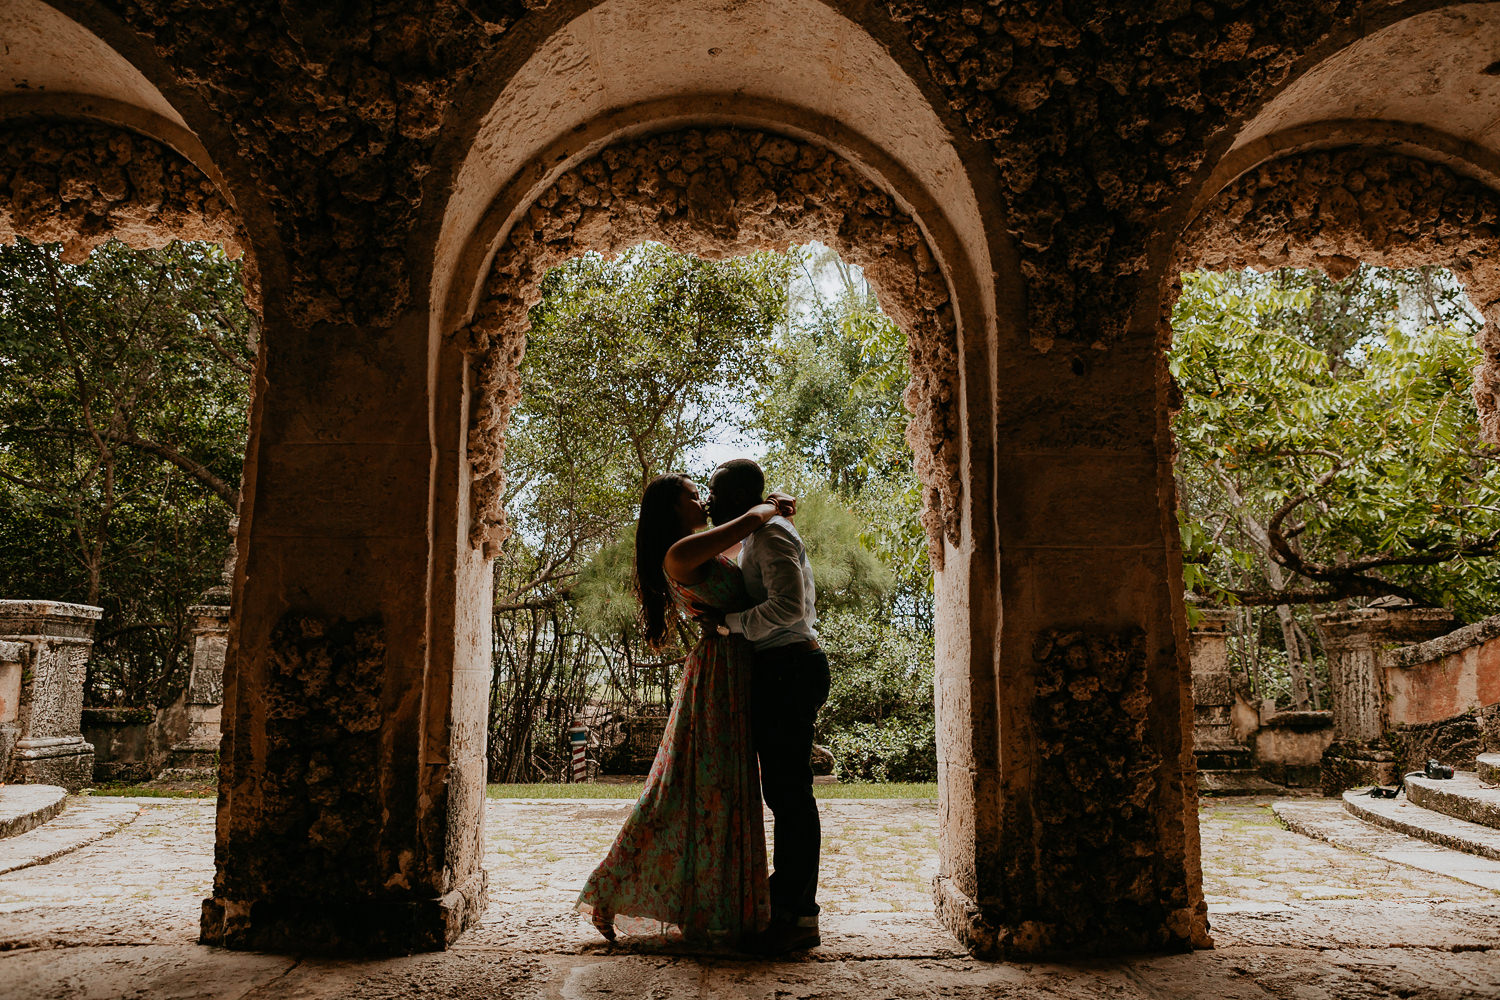 silhouette of couple in middle of castle arch and trees in background